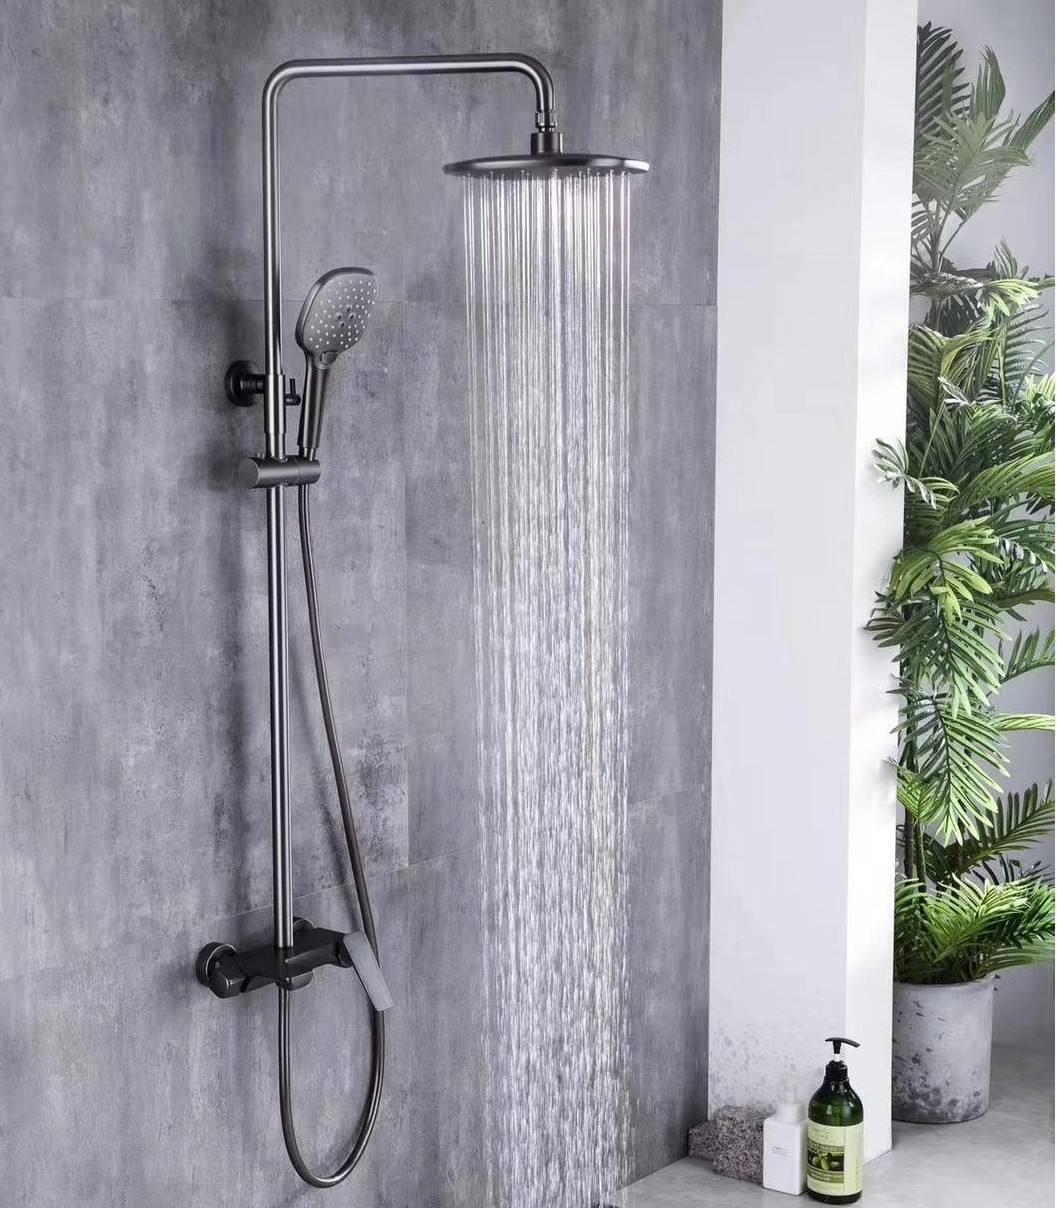 G675 2020 Quality bathroom sanitary shower column rain shower set